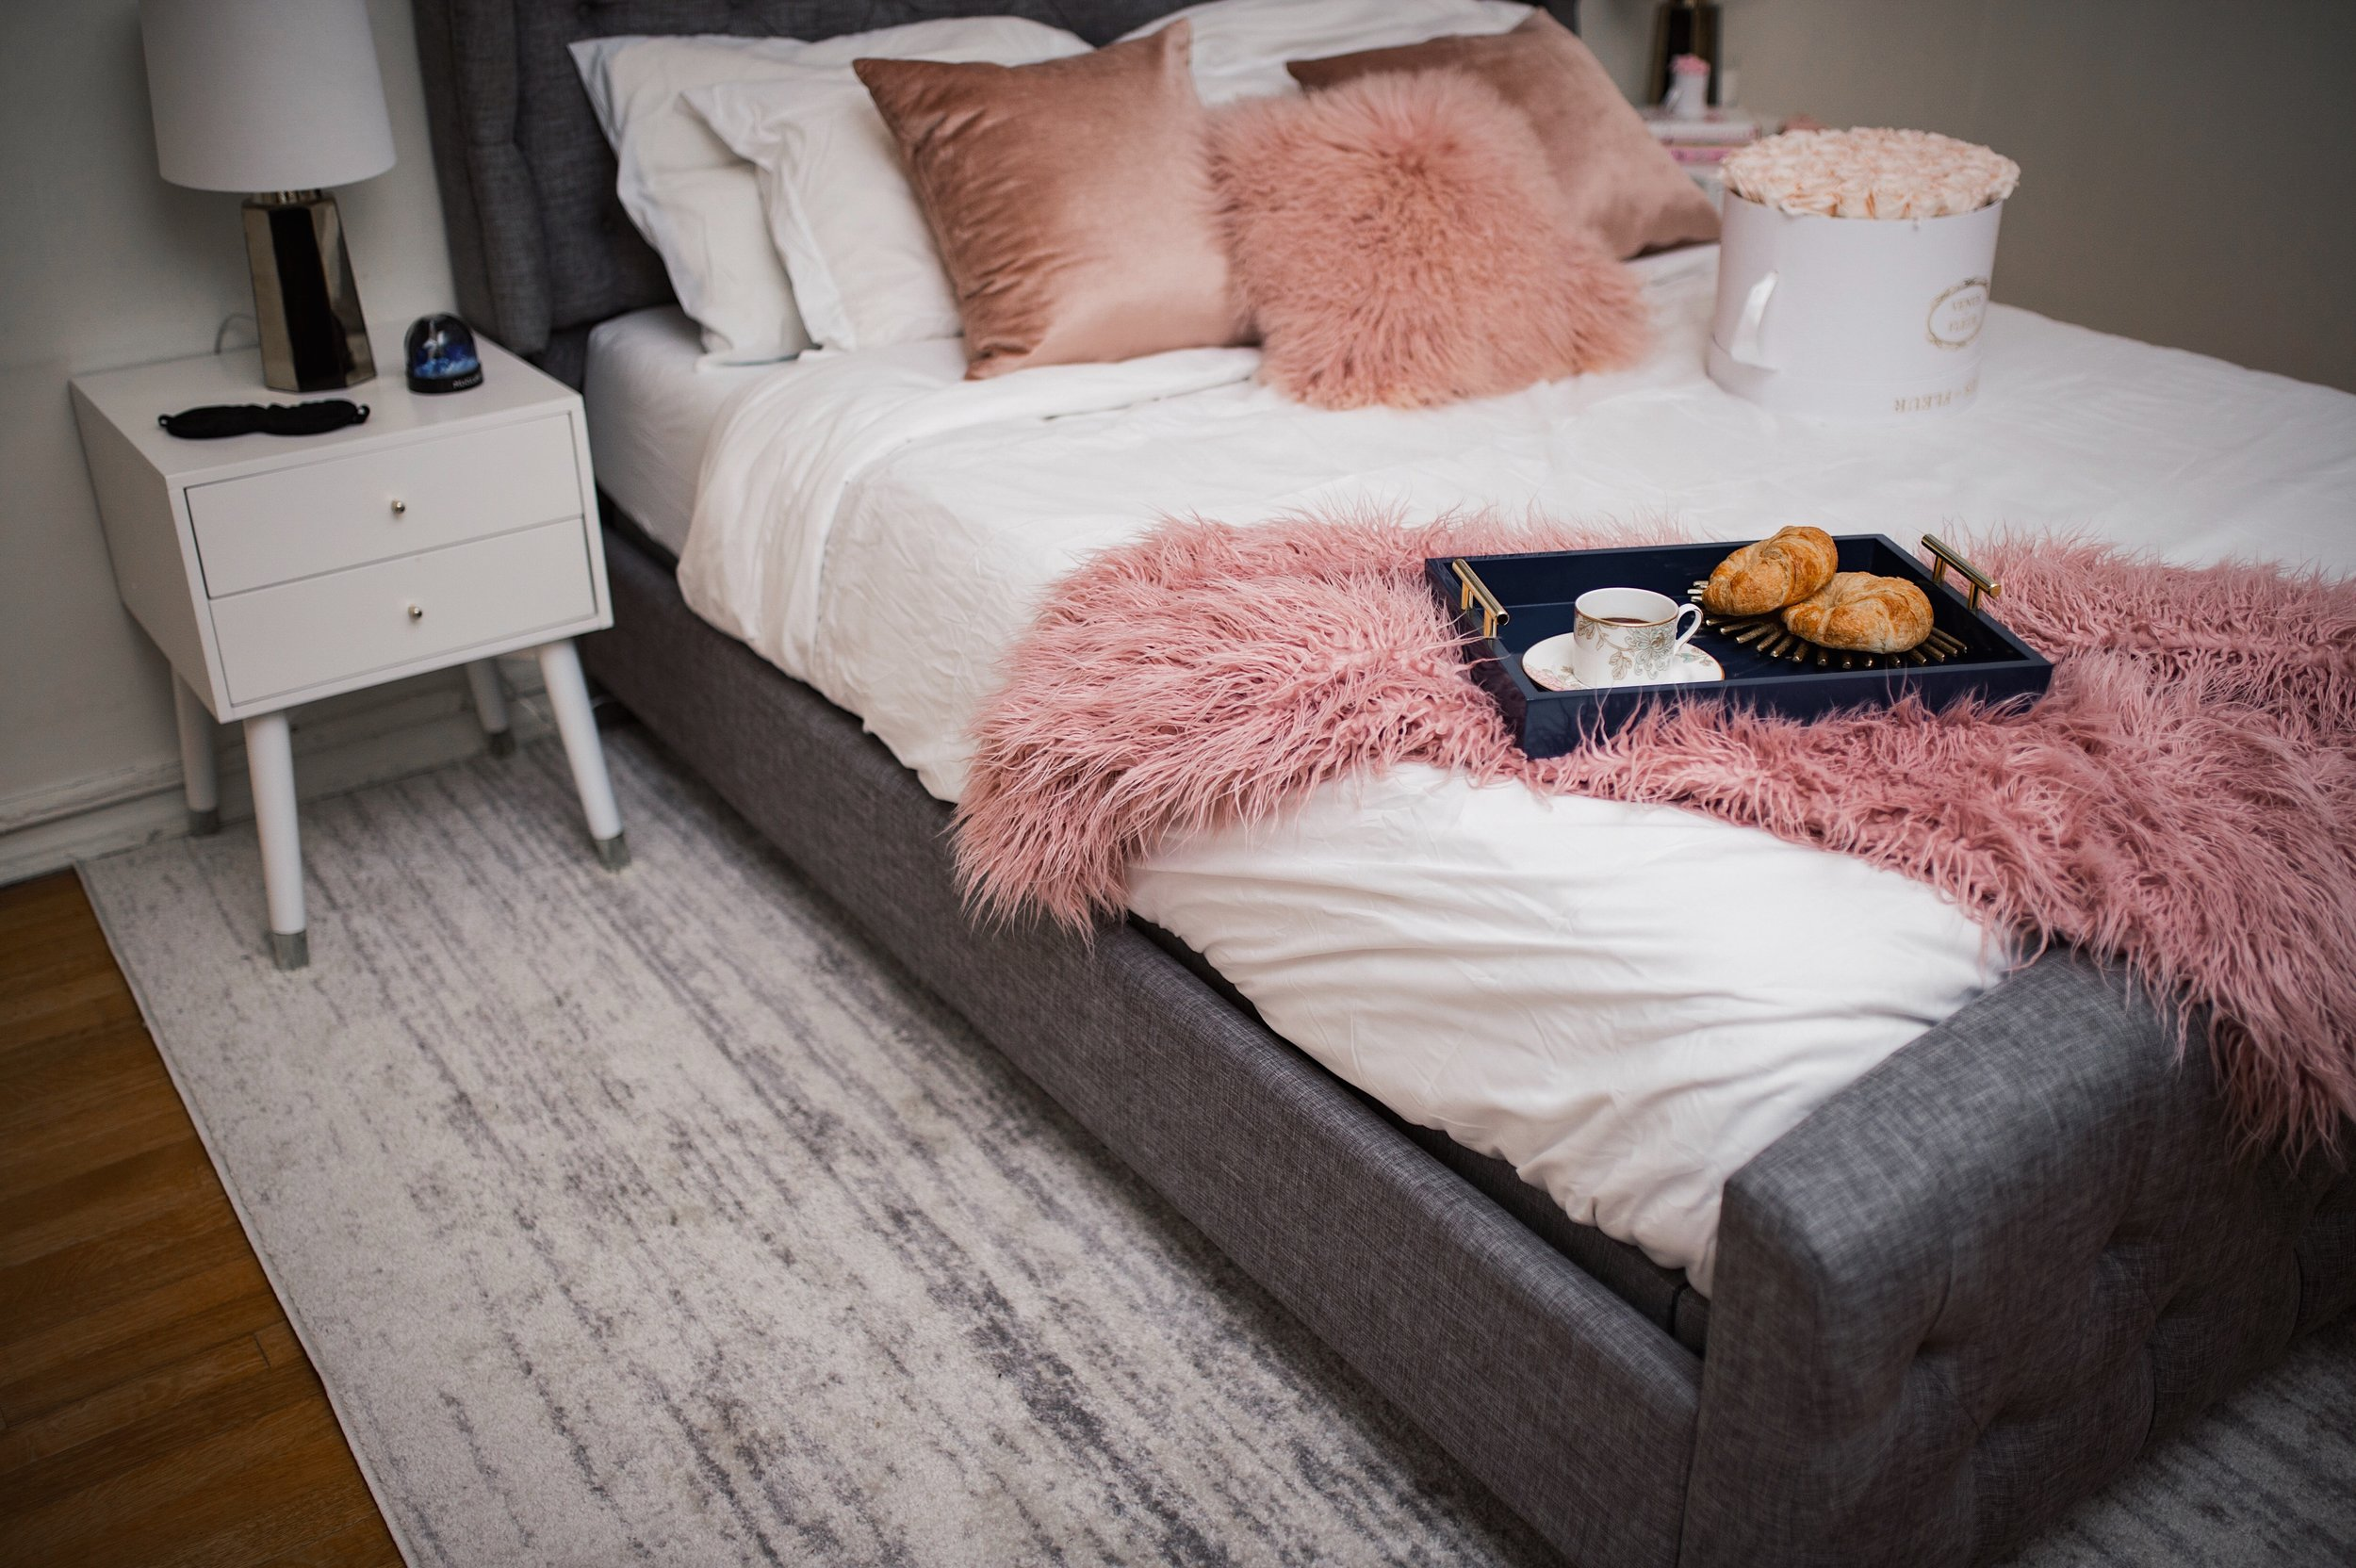 My Bedroom Reveal Joss & Main Esther Santer Fashion Blog NYC Street Style Blogger White Duvet Cover Pink Furry Throw Pillows Blanket Blush Gold Lamps Grey Bed Headboard Shopping Buy Beautiful Room  Furniture White Nightstands Navy Tray Art Breakfast.jpg